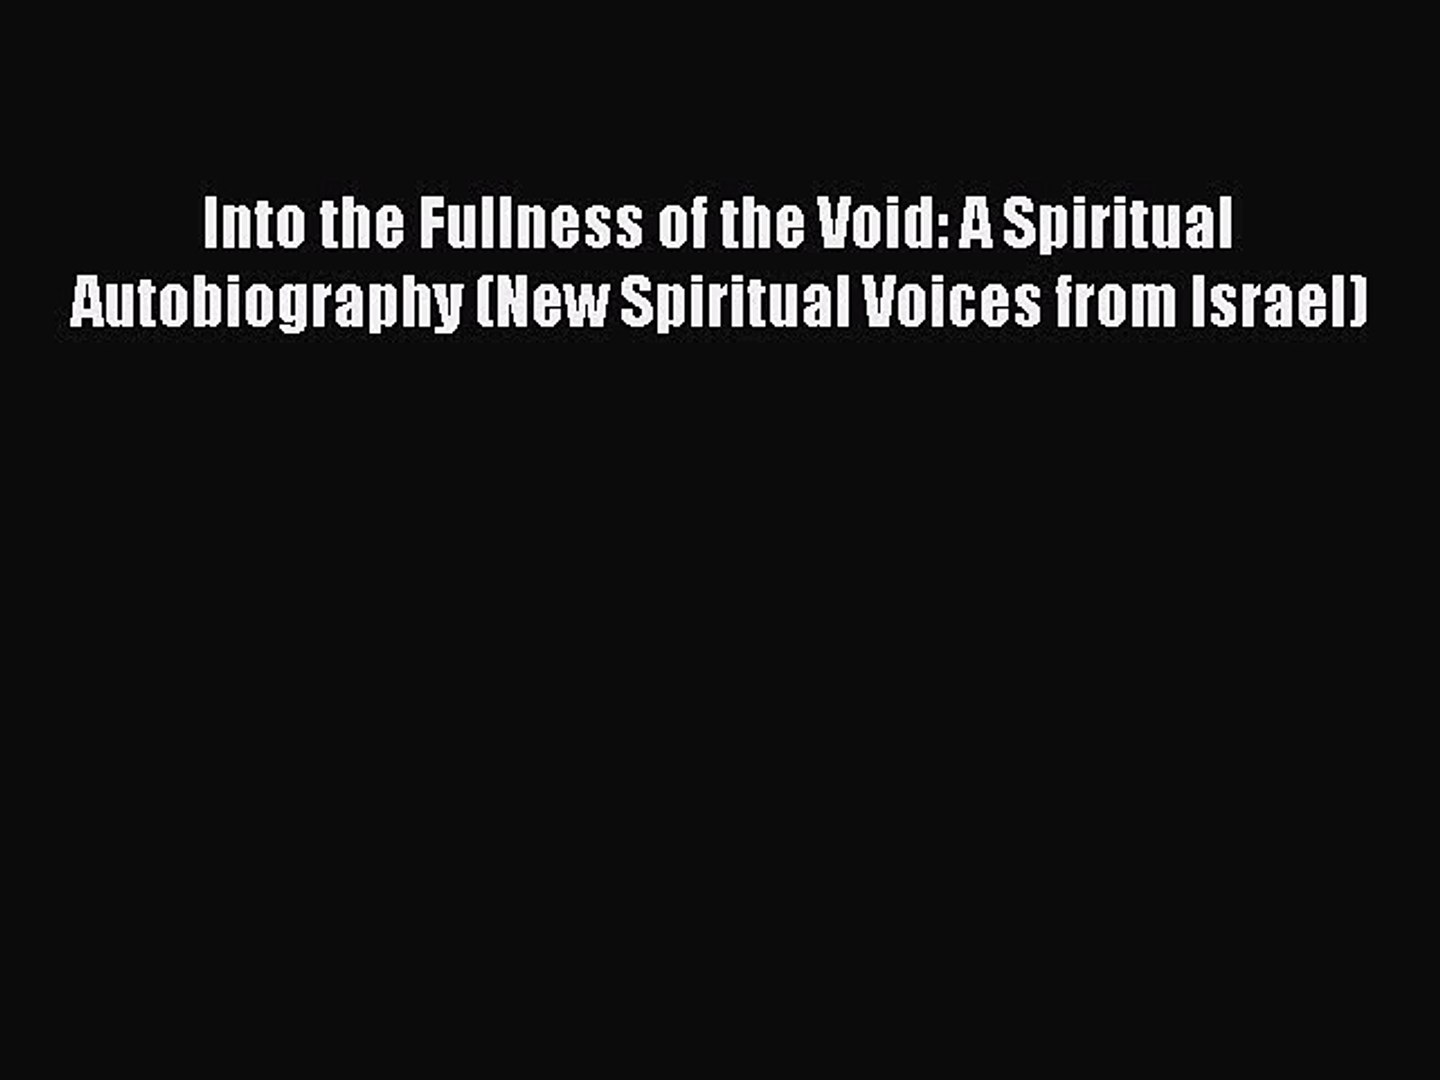 Download Into the Fullness of the Void: A Spiritual Autobiography (New Spiritual Voices from